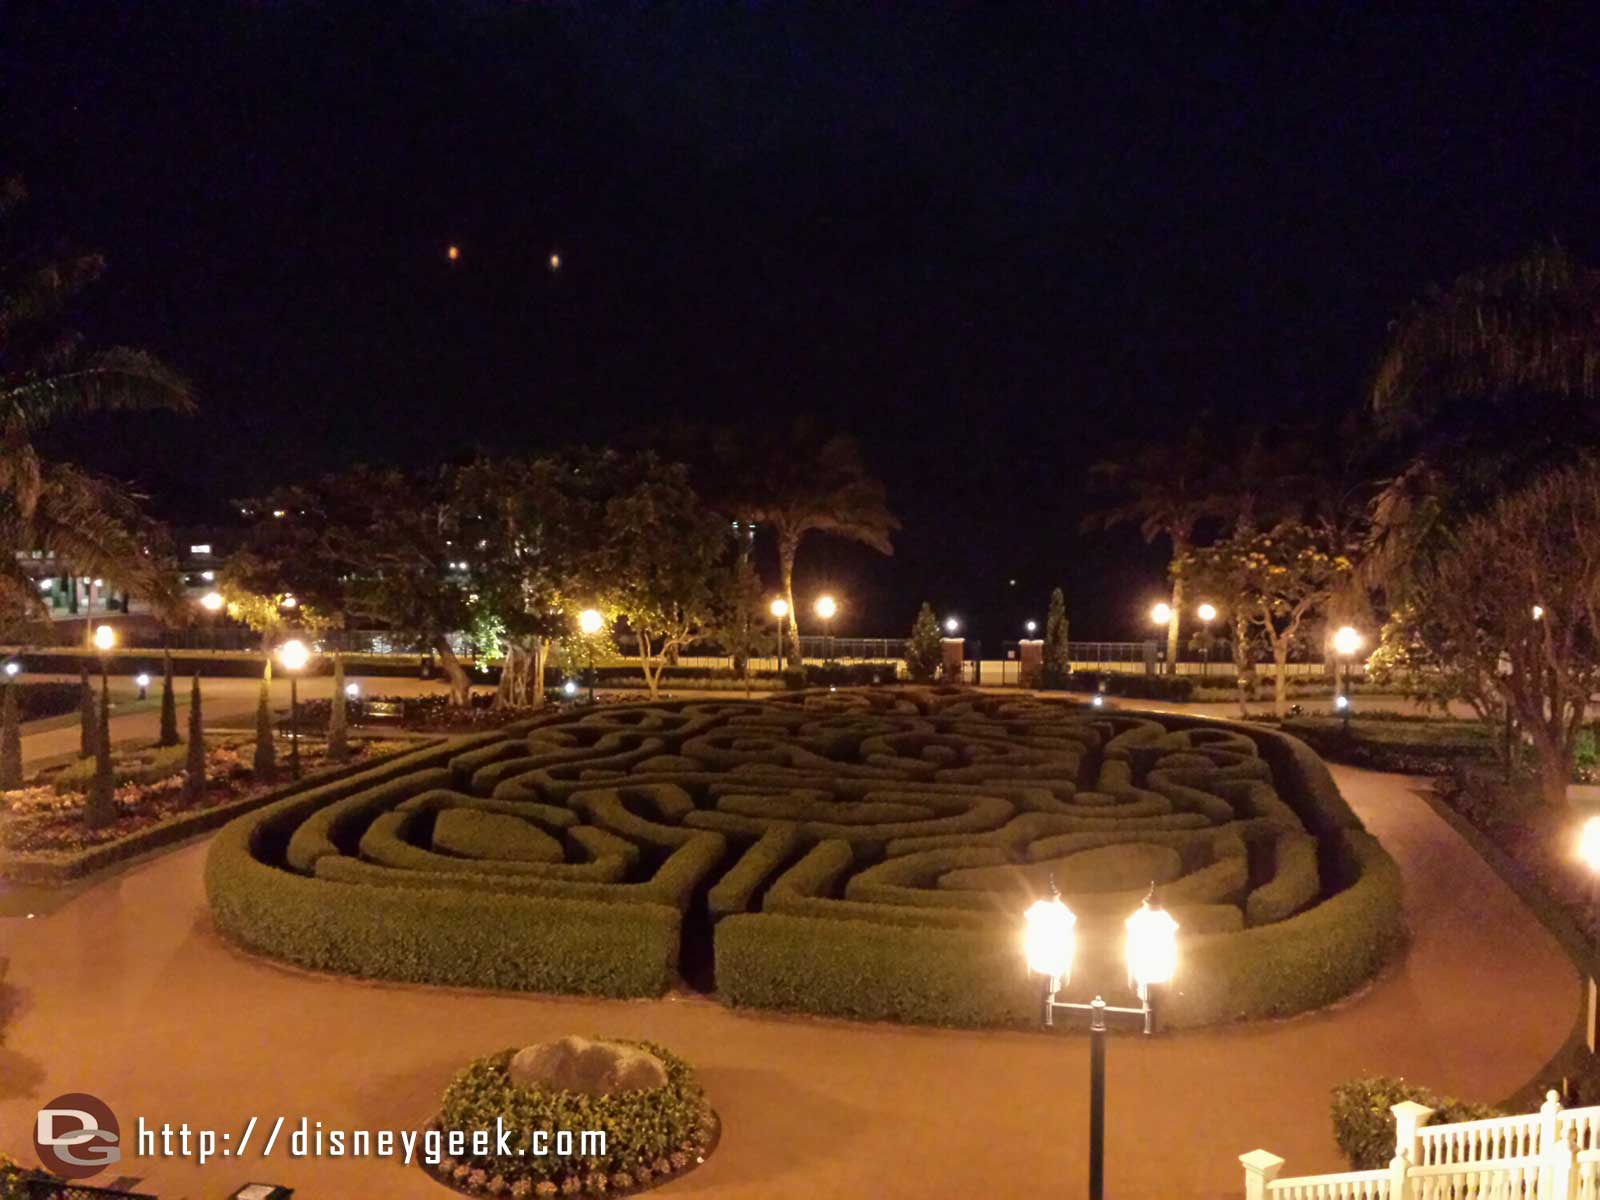 #HongKongDisneyland Hotel maze this evening (all is quiet since it is nearly midnight)